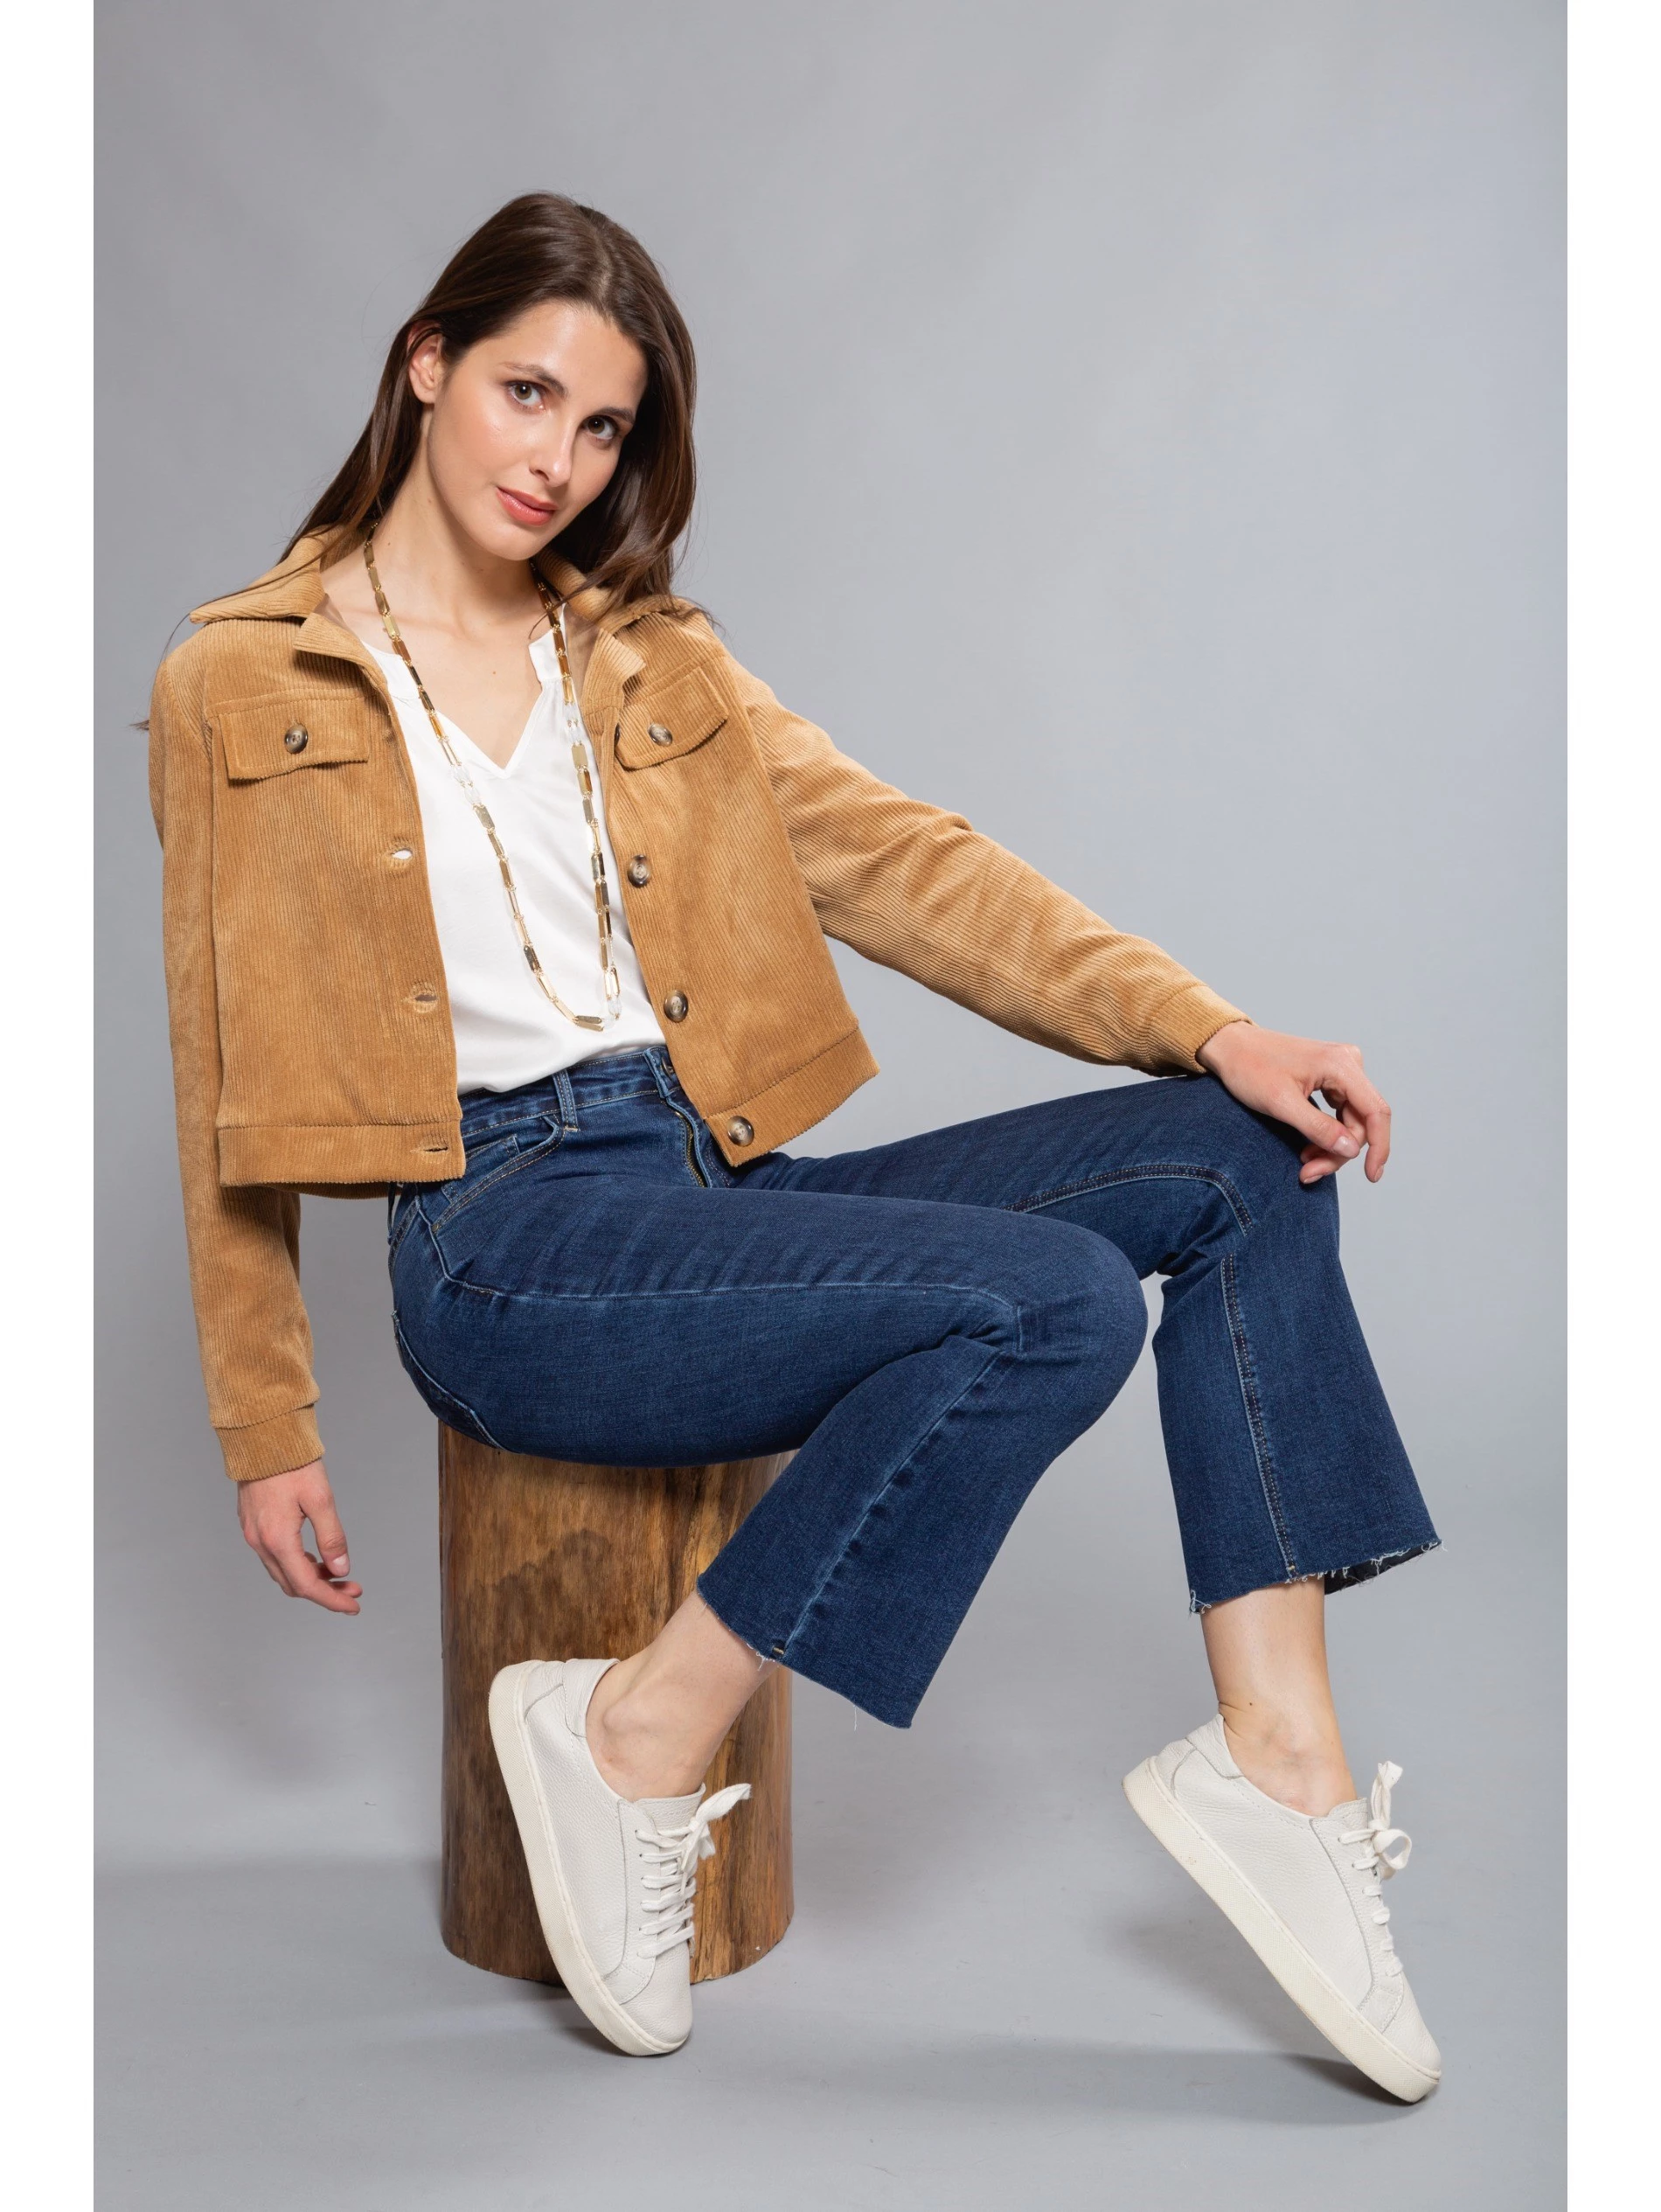 JEANS WITH SHORT LEGS